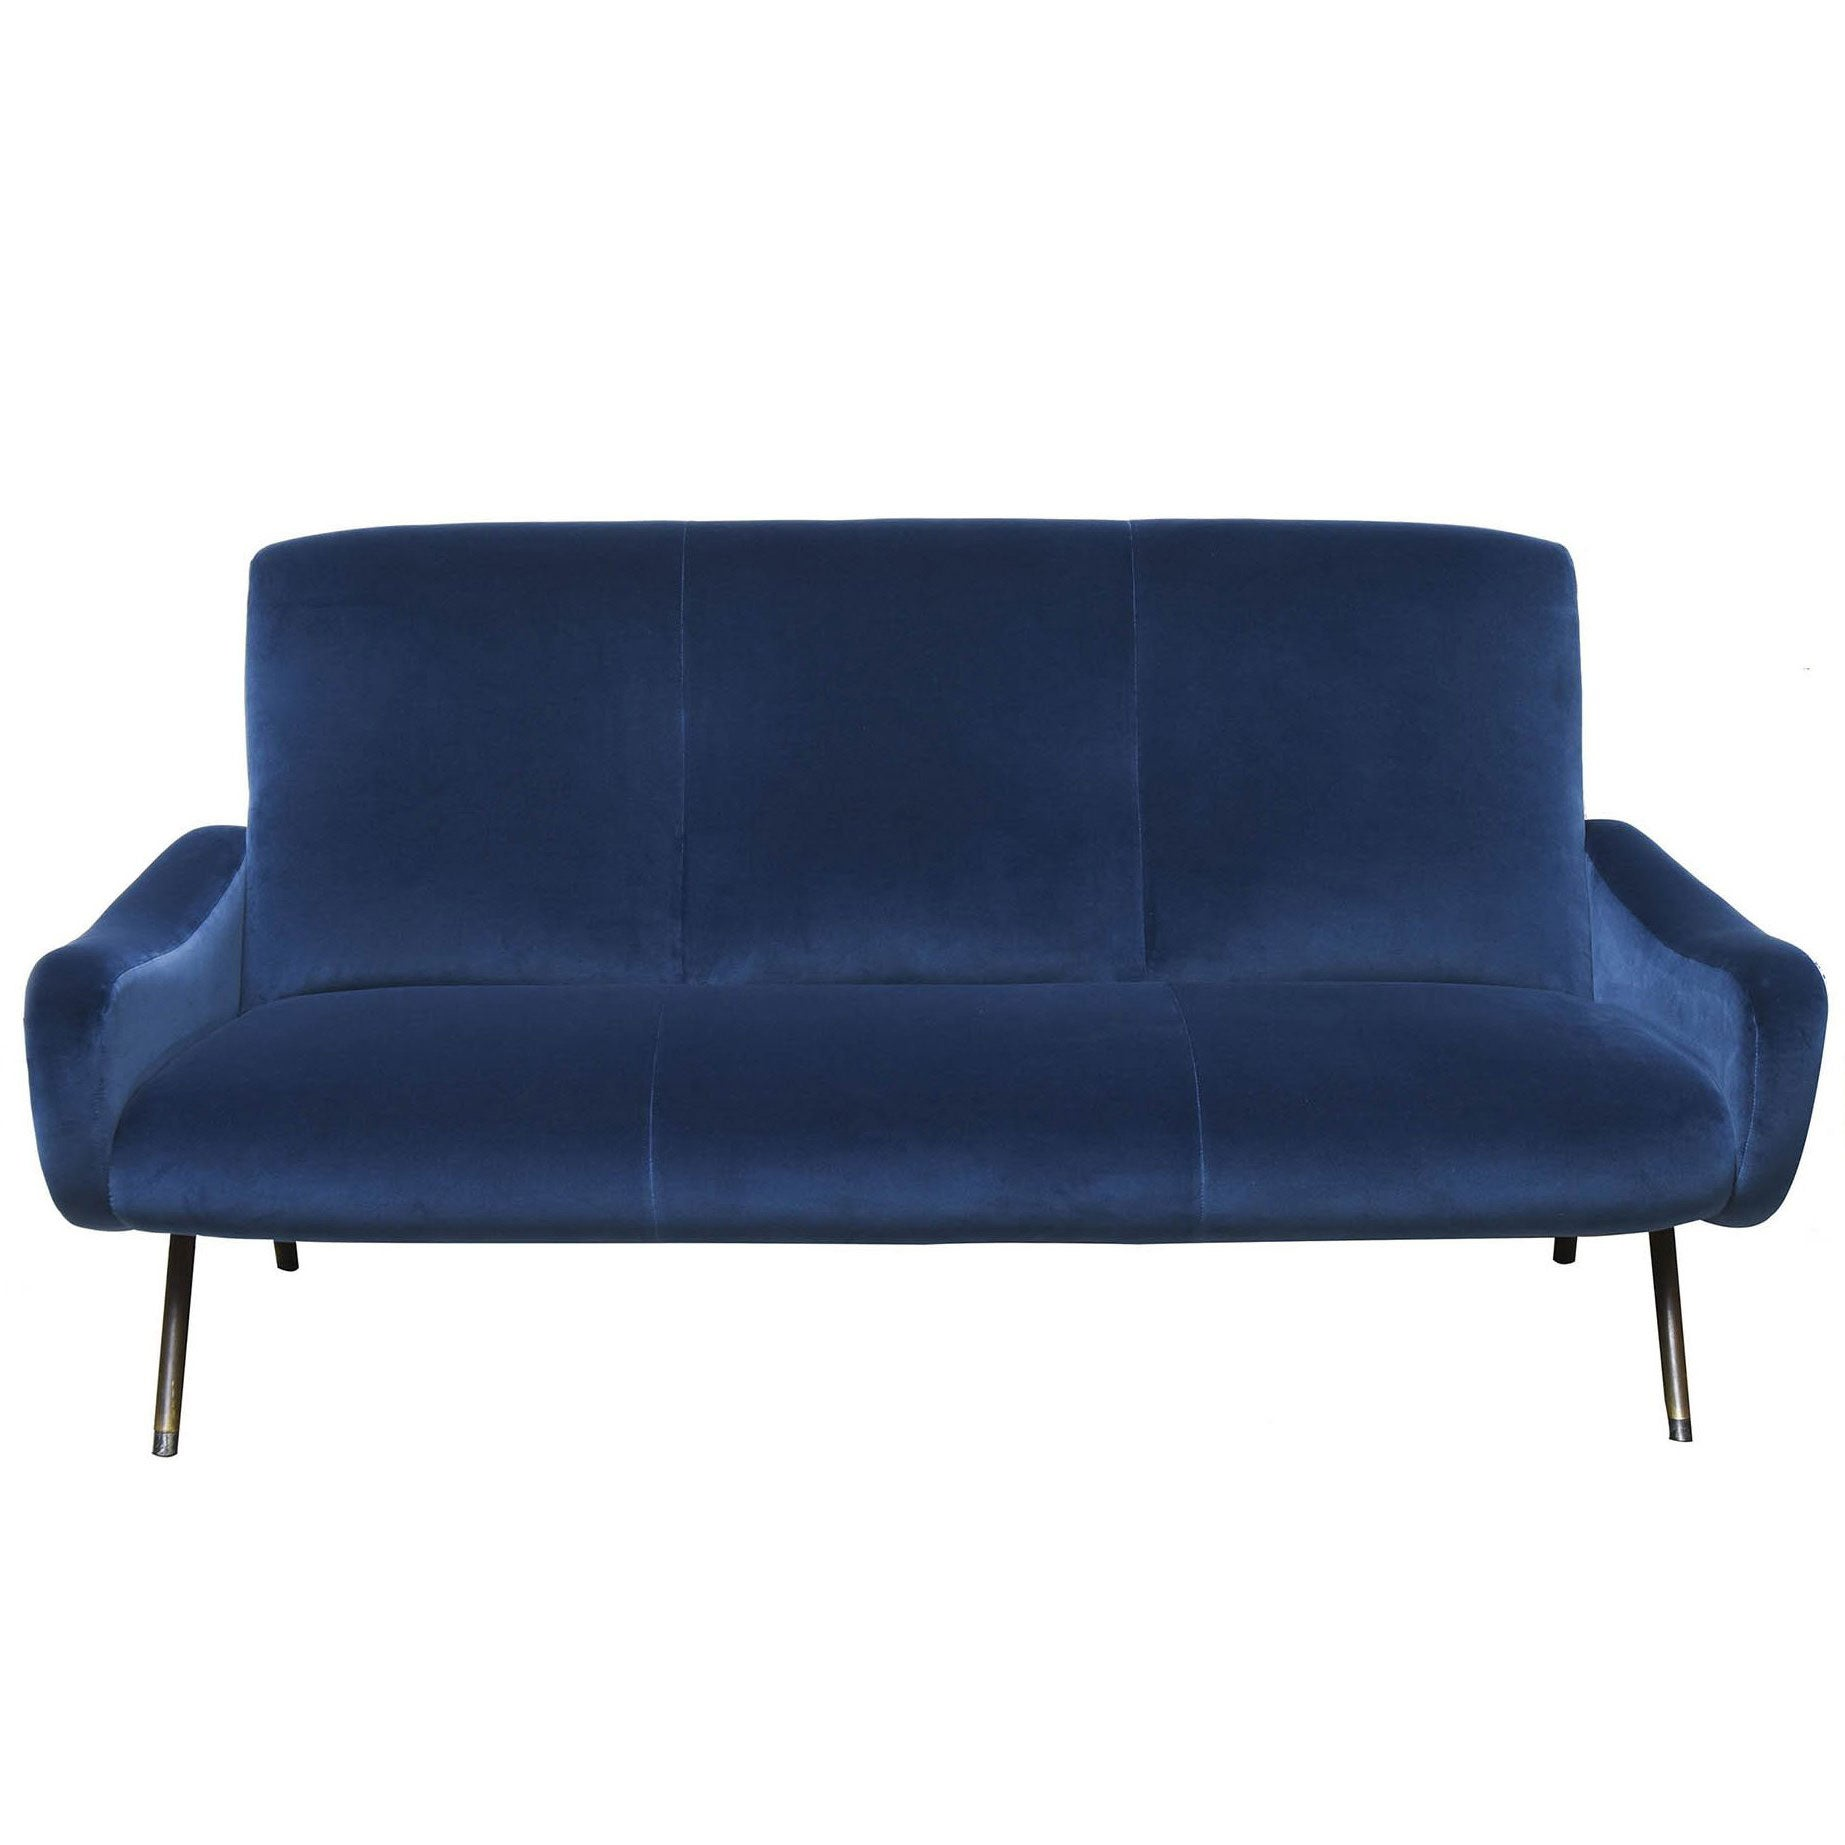 1951 Sleep-O-Matic Sofa by Marco Zanuso for Arflex at 1stdibs